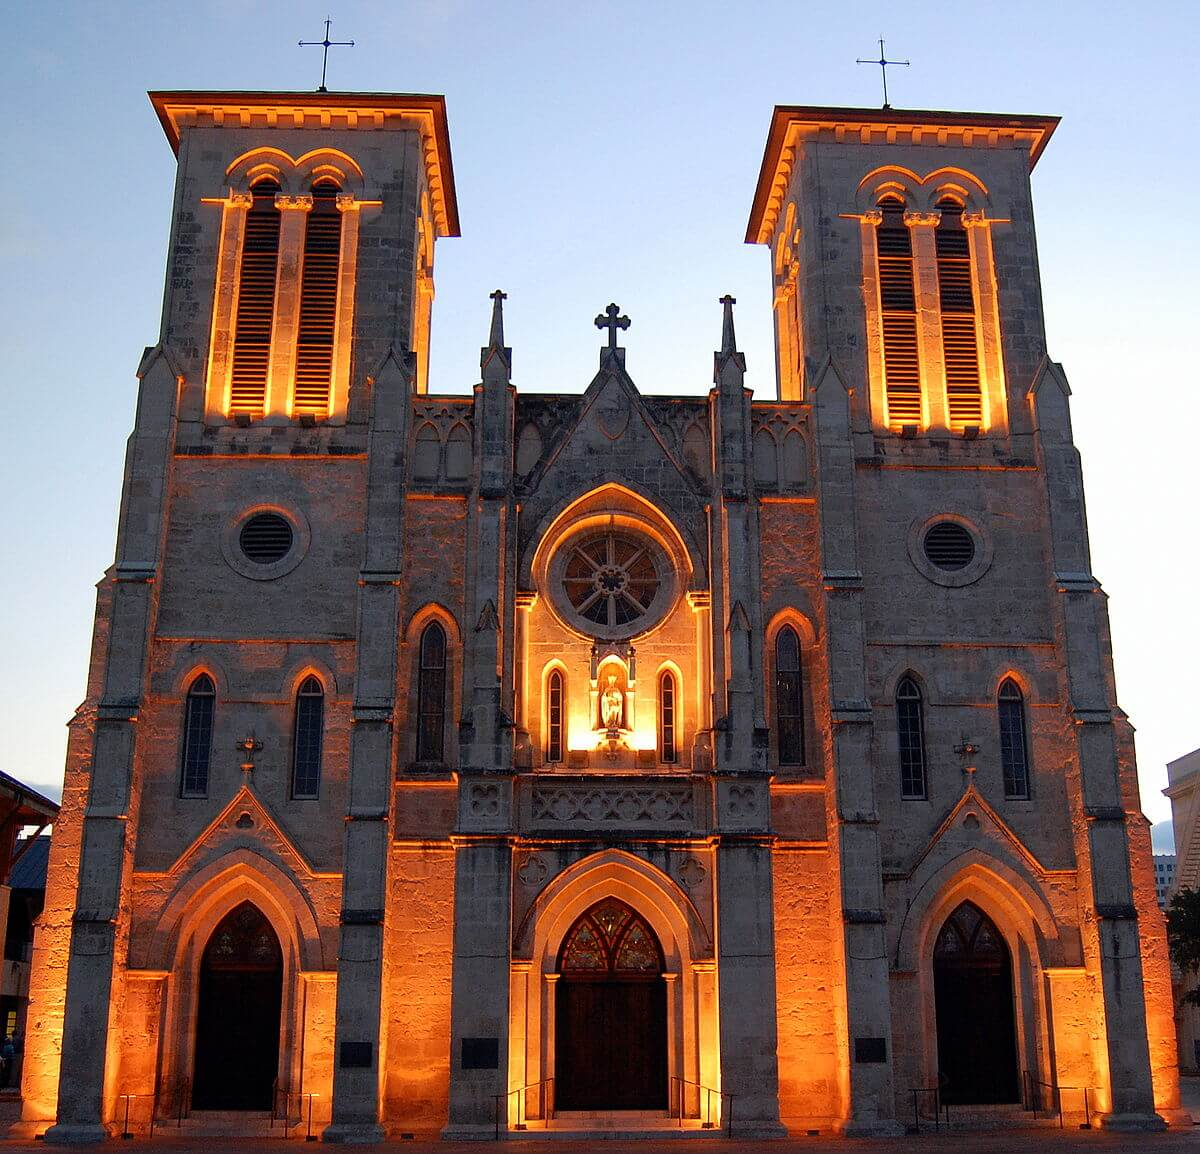 haunted places in america, San Fernando Cathedral